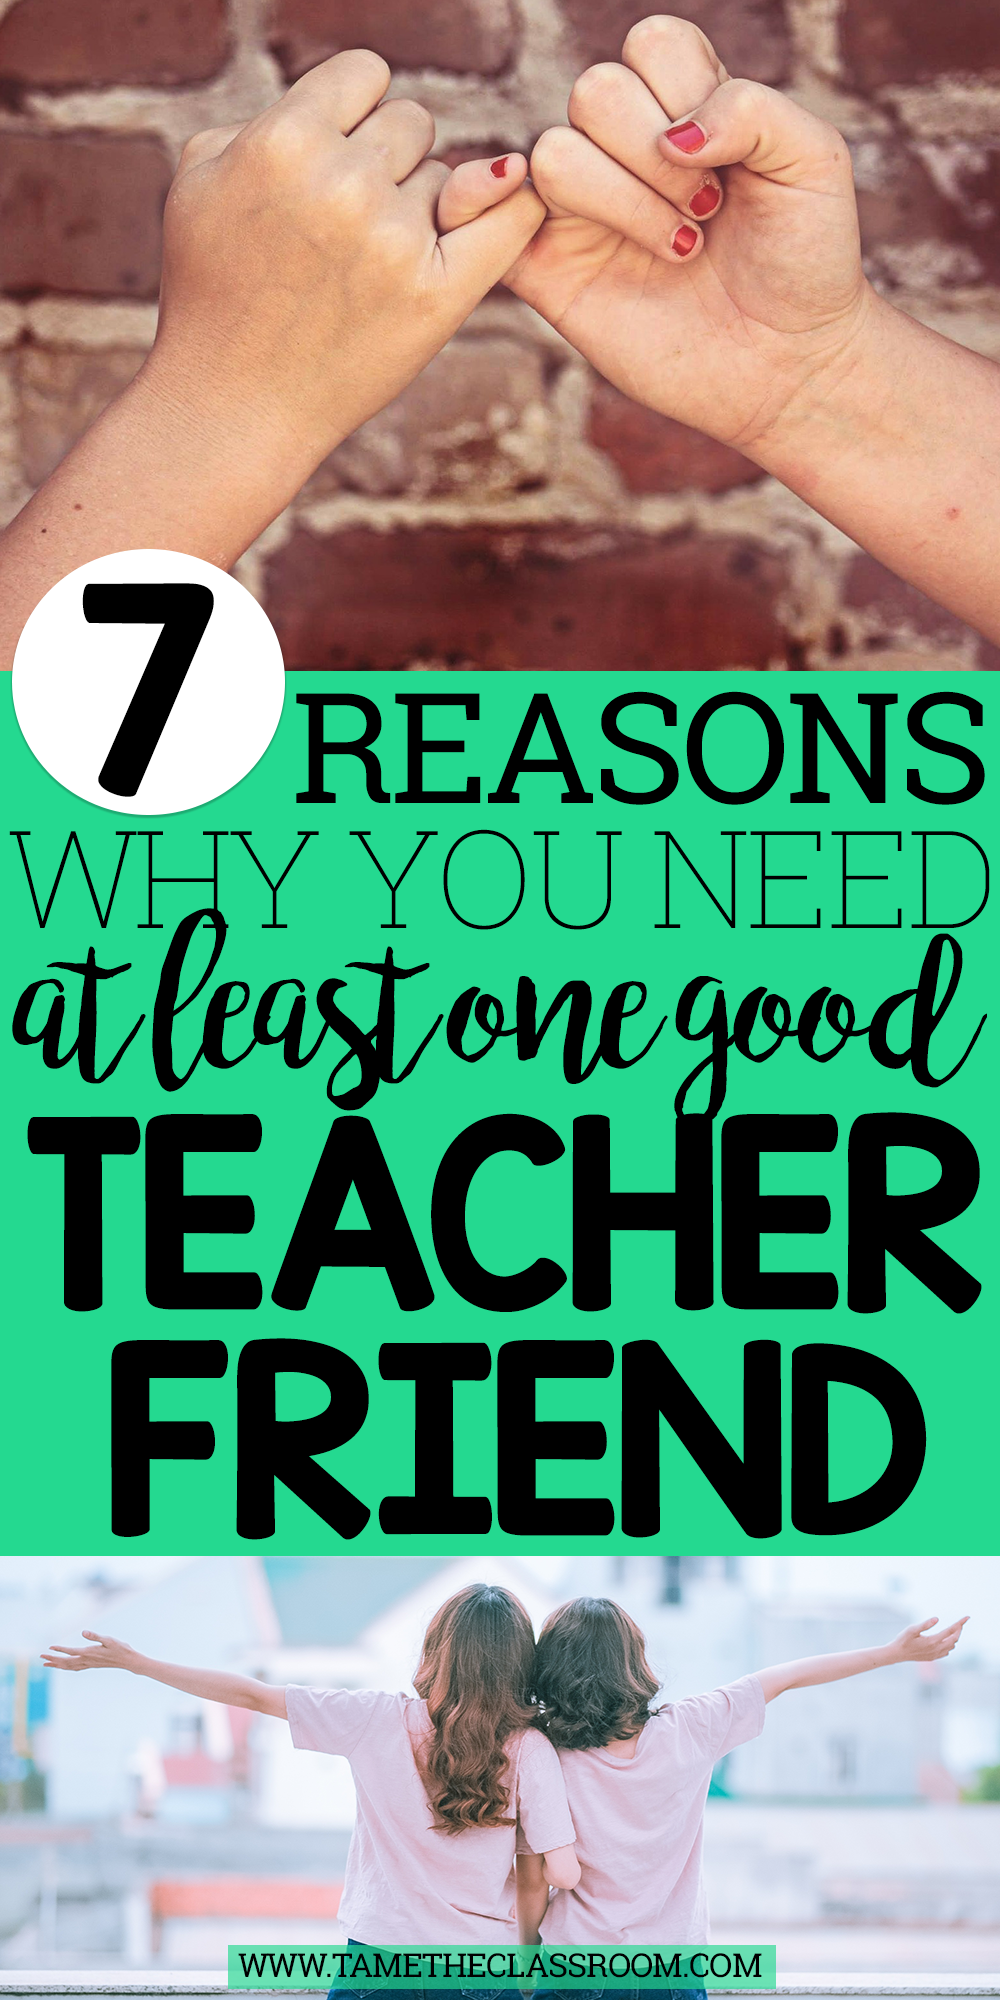 7 reasons why you need a teacher friend